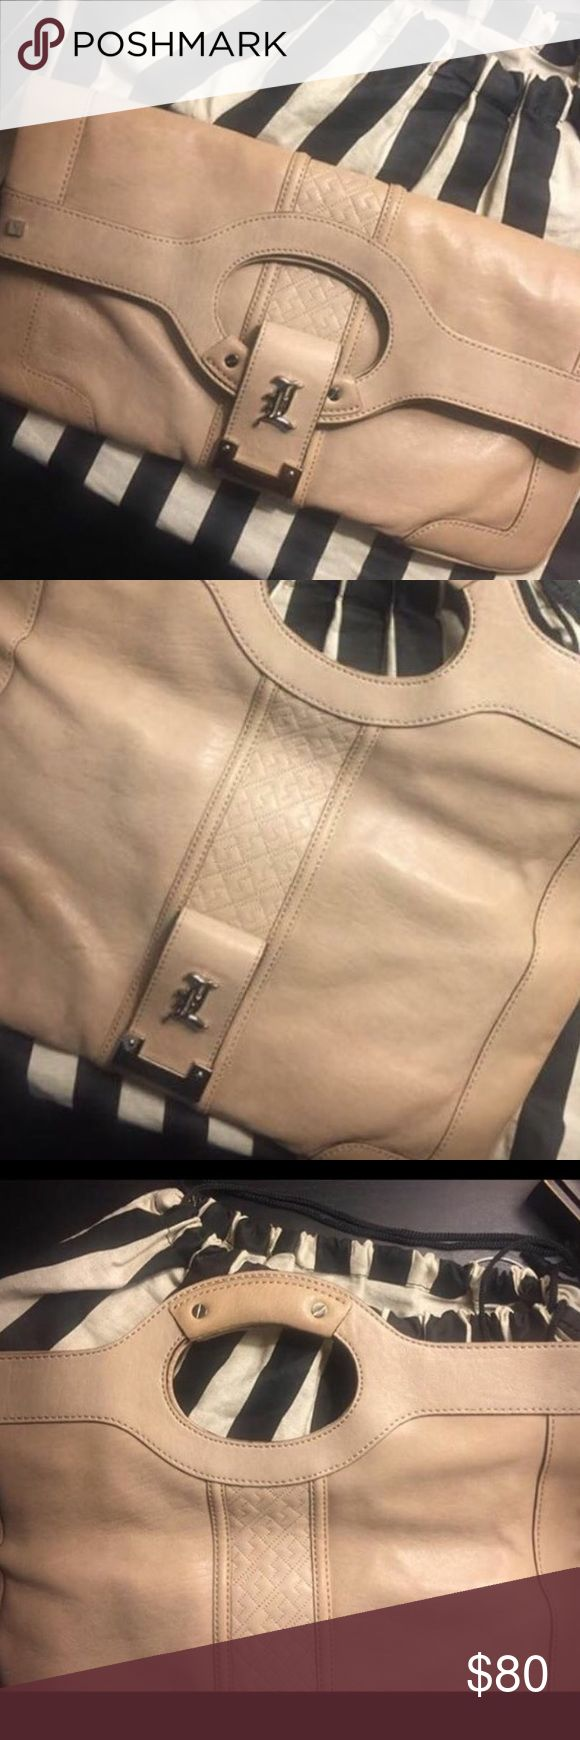 L.A.M.B. Original Leather clutch LAMB by Gwen Stefani leather clutch. Excellent condition comes with original dust bag.  Beige like color.  No stains.   * PLEASE CHECK MY OTHER ITEMS FOR SALE *  Thank You 😊  NOTE:  I also have matching LAMB pumps to go with the purse ladies!!!!  Check out my other items for sale!   Thank you!!! Bags Clutches & Wristlets